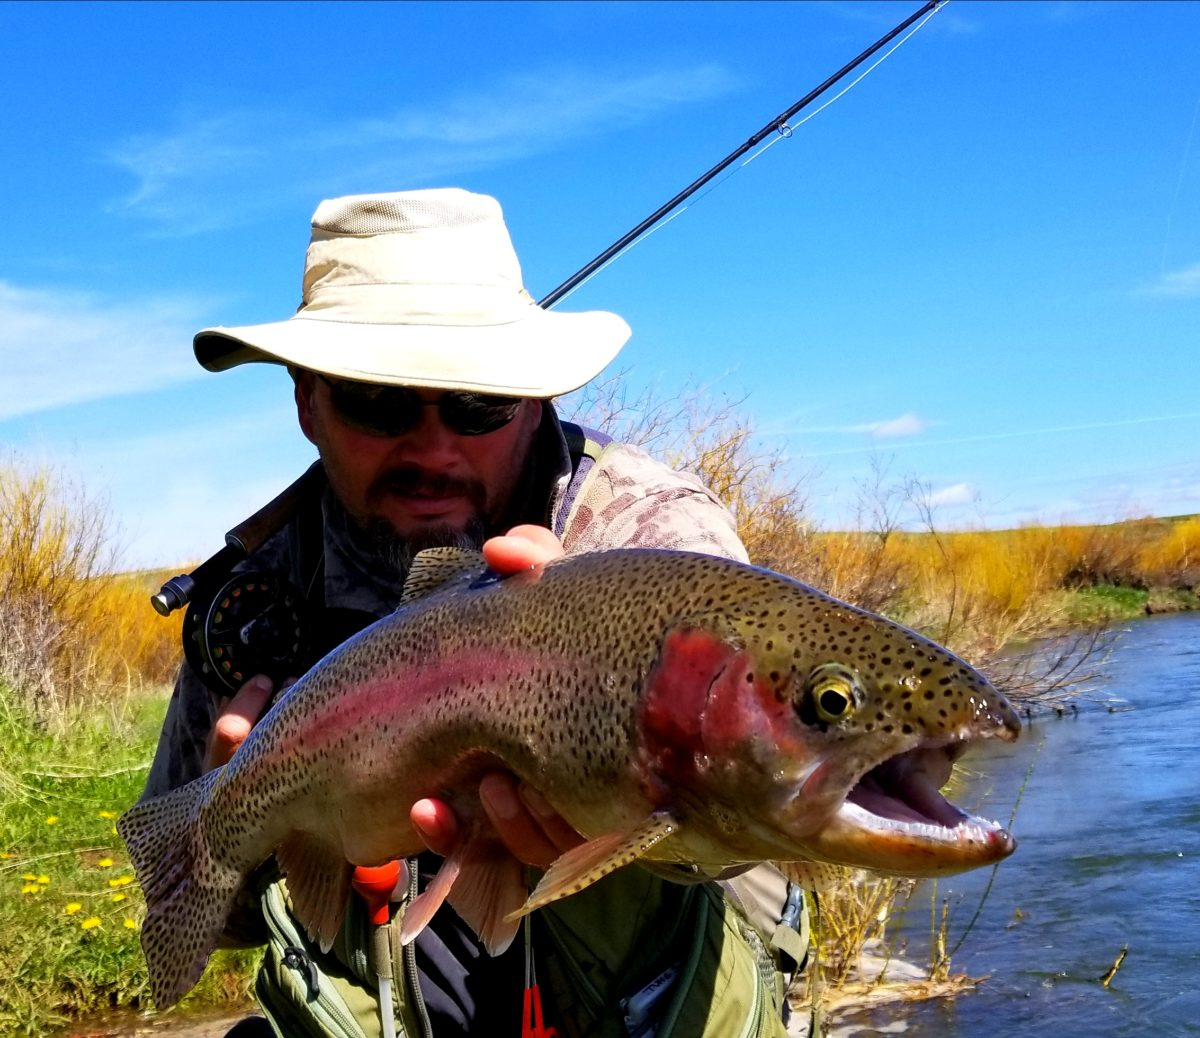 Pro Tips: The 7 Deadly Sins of Fly Fishing